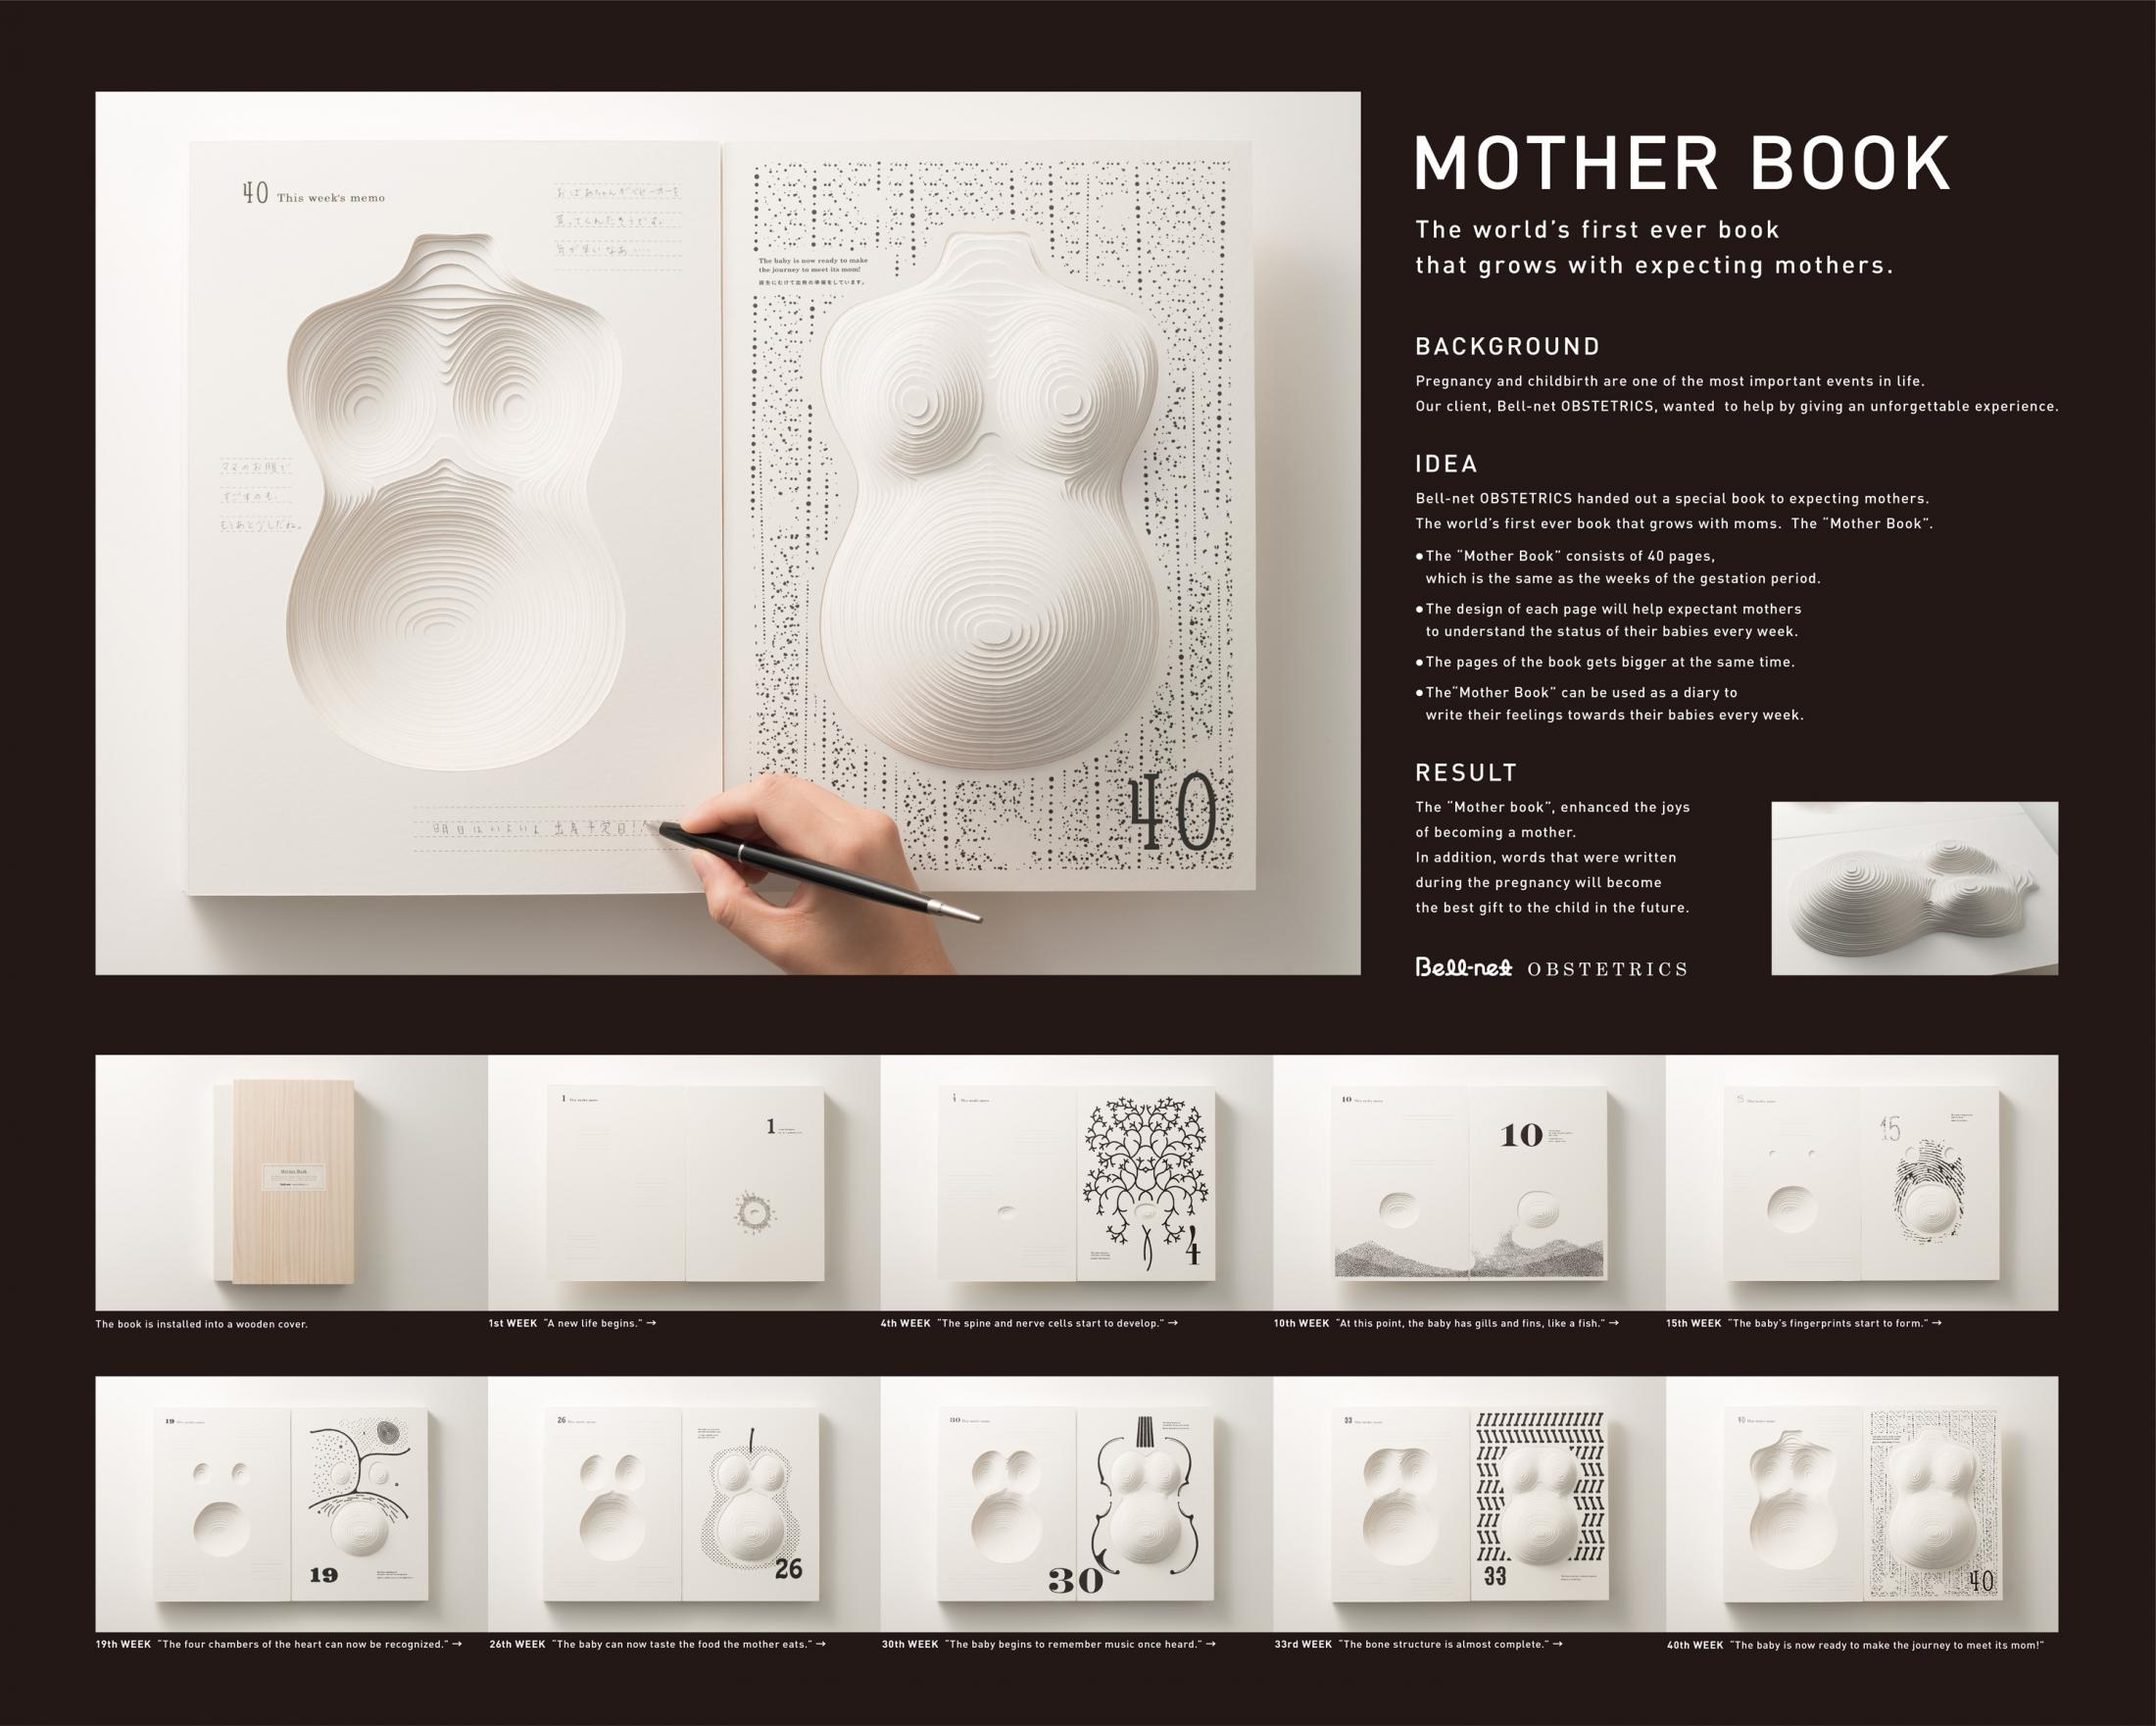 Thumbnail for MOTHER BOOK